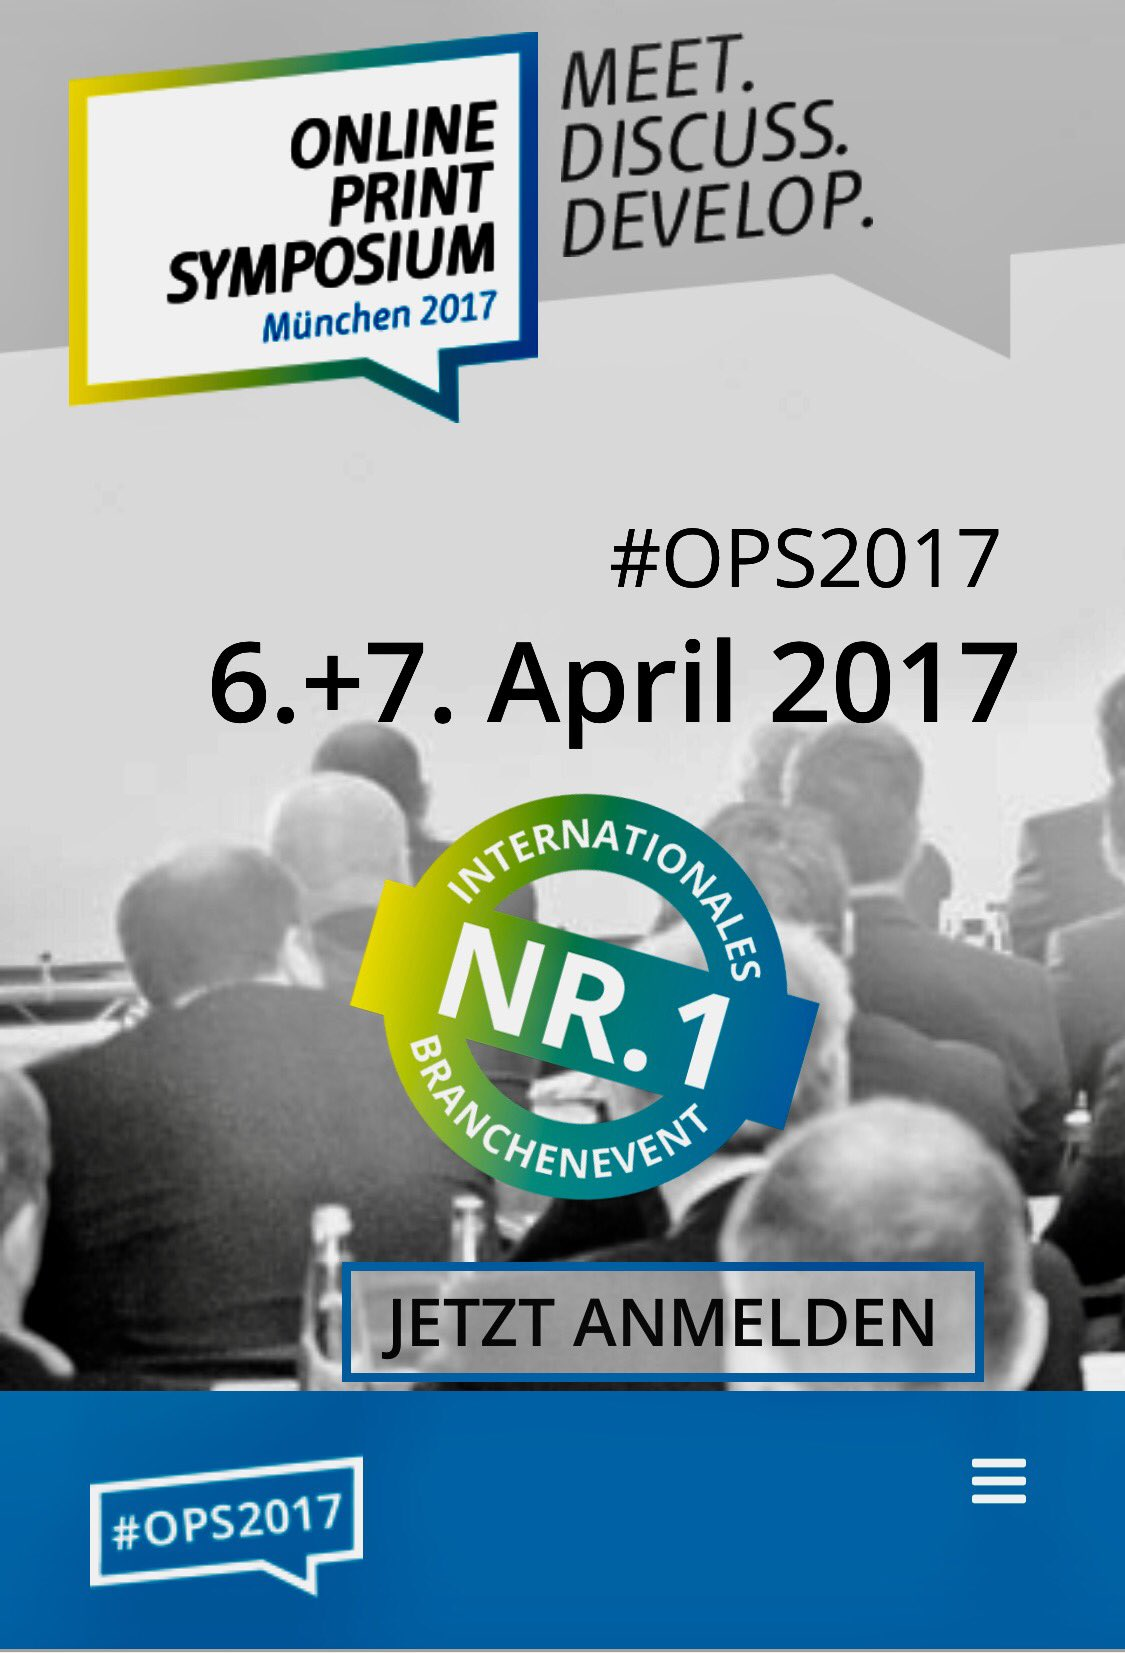 Oops. Gleich geht's zum #ops2017. -- Ready for take-off. https://t.co/ulYmf6Zlii